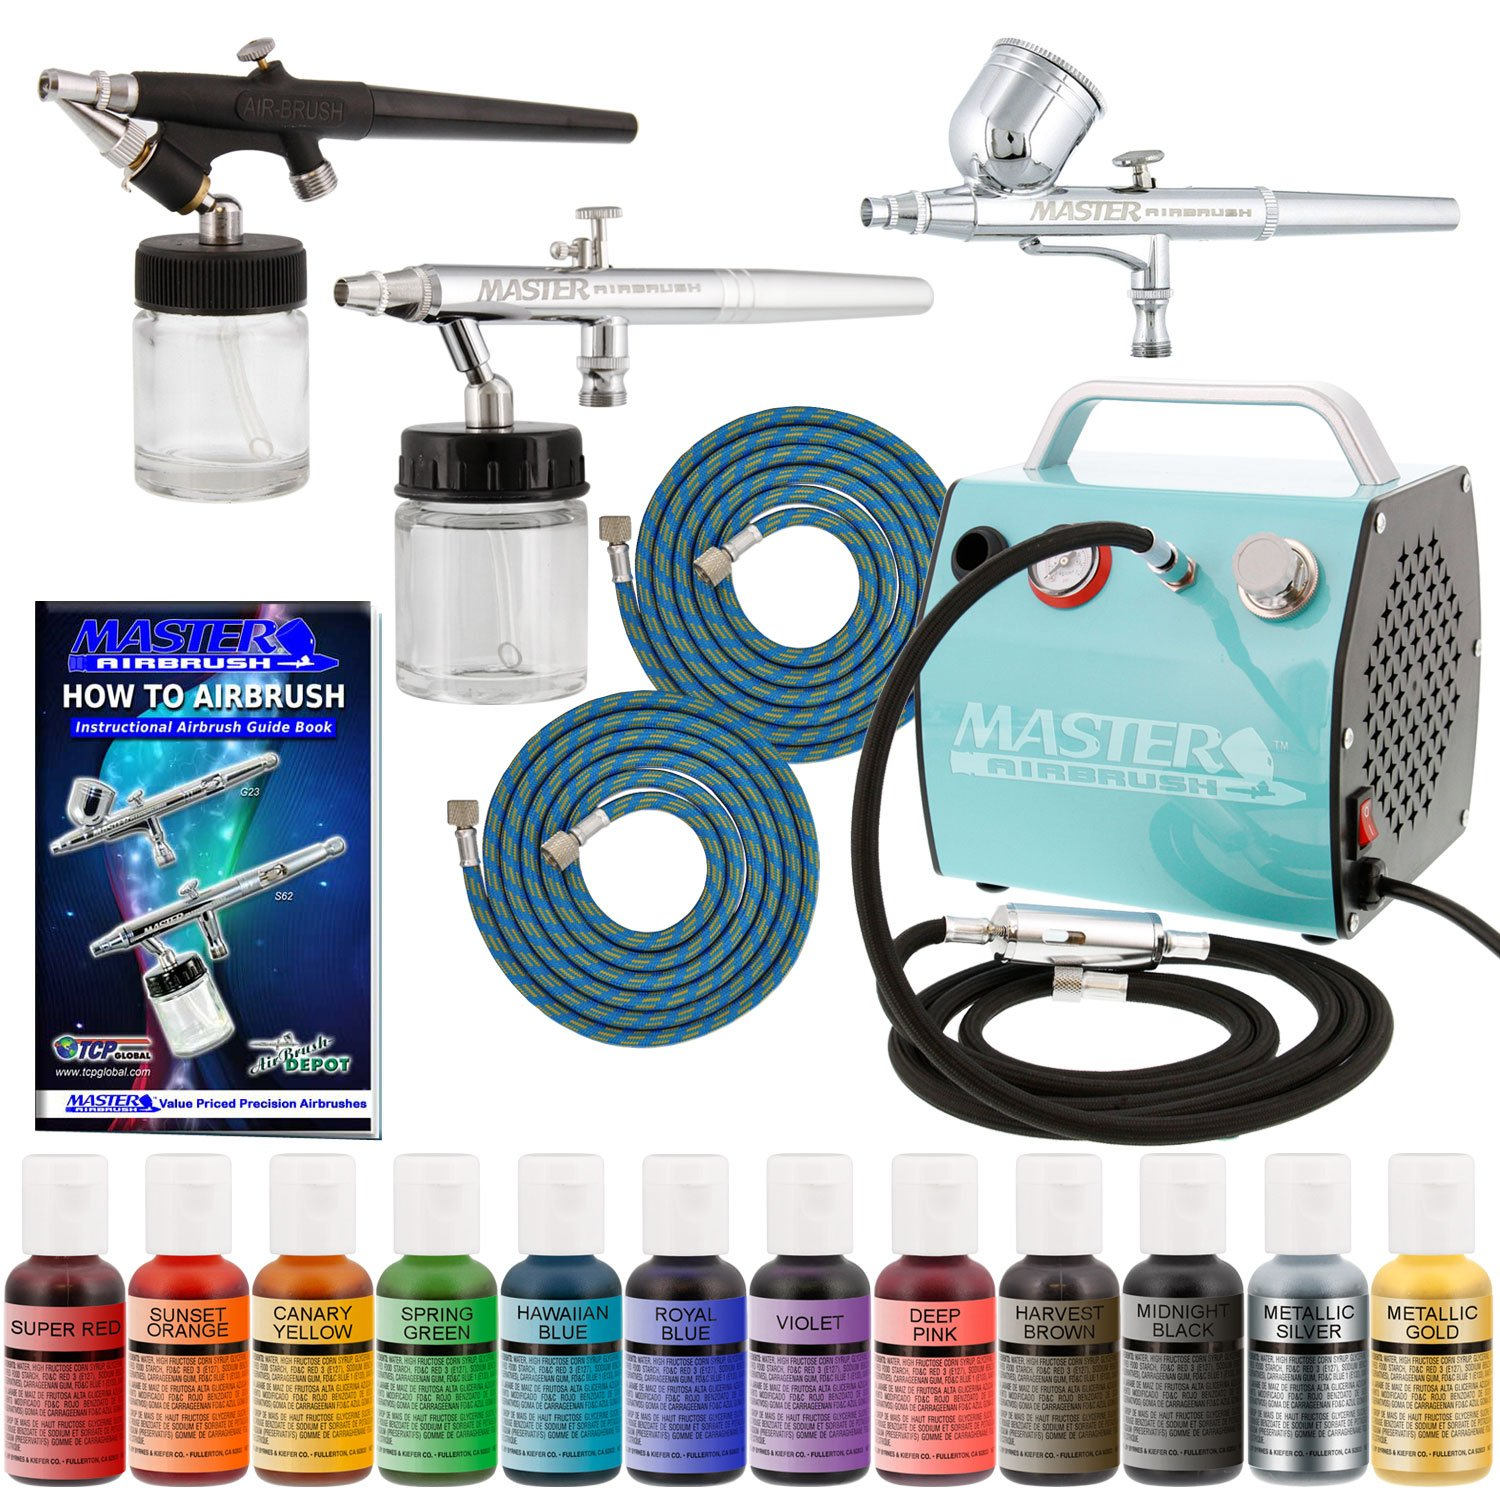 Artlogic Cake Decorating Airbrush Kit : 10 Best Airbrush Kits for Cake Decorating   Modern Home Pulse